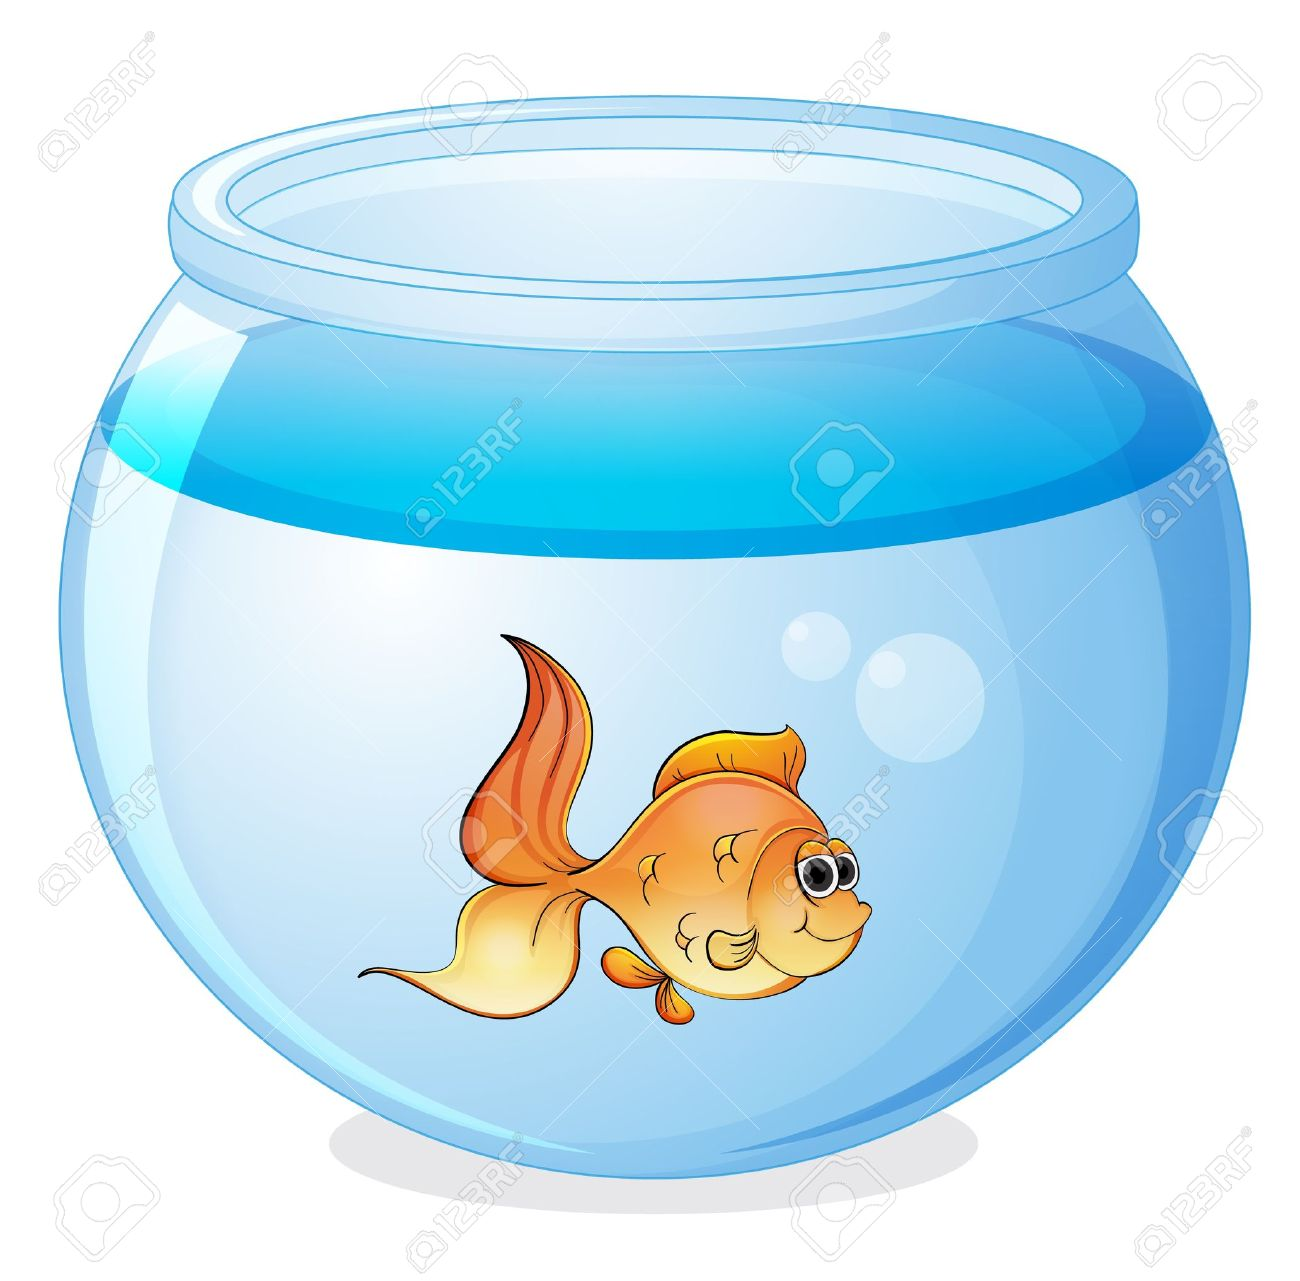 illustration of a fish and a bowl on a white background royalty free cliparts vectors and stock illustration image 16115592 illustration of a fish and a bowl on a white background